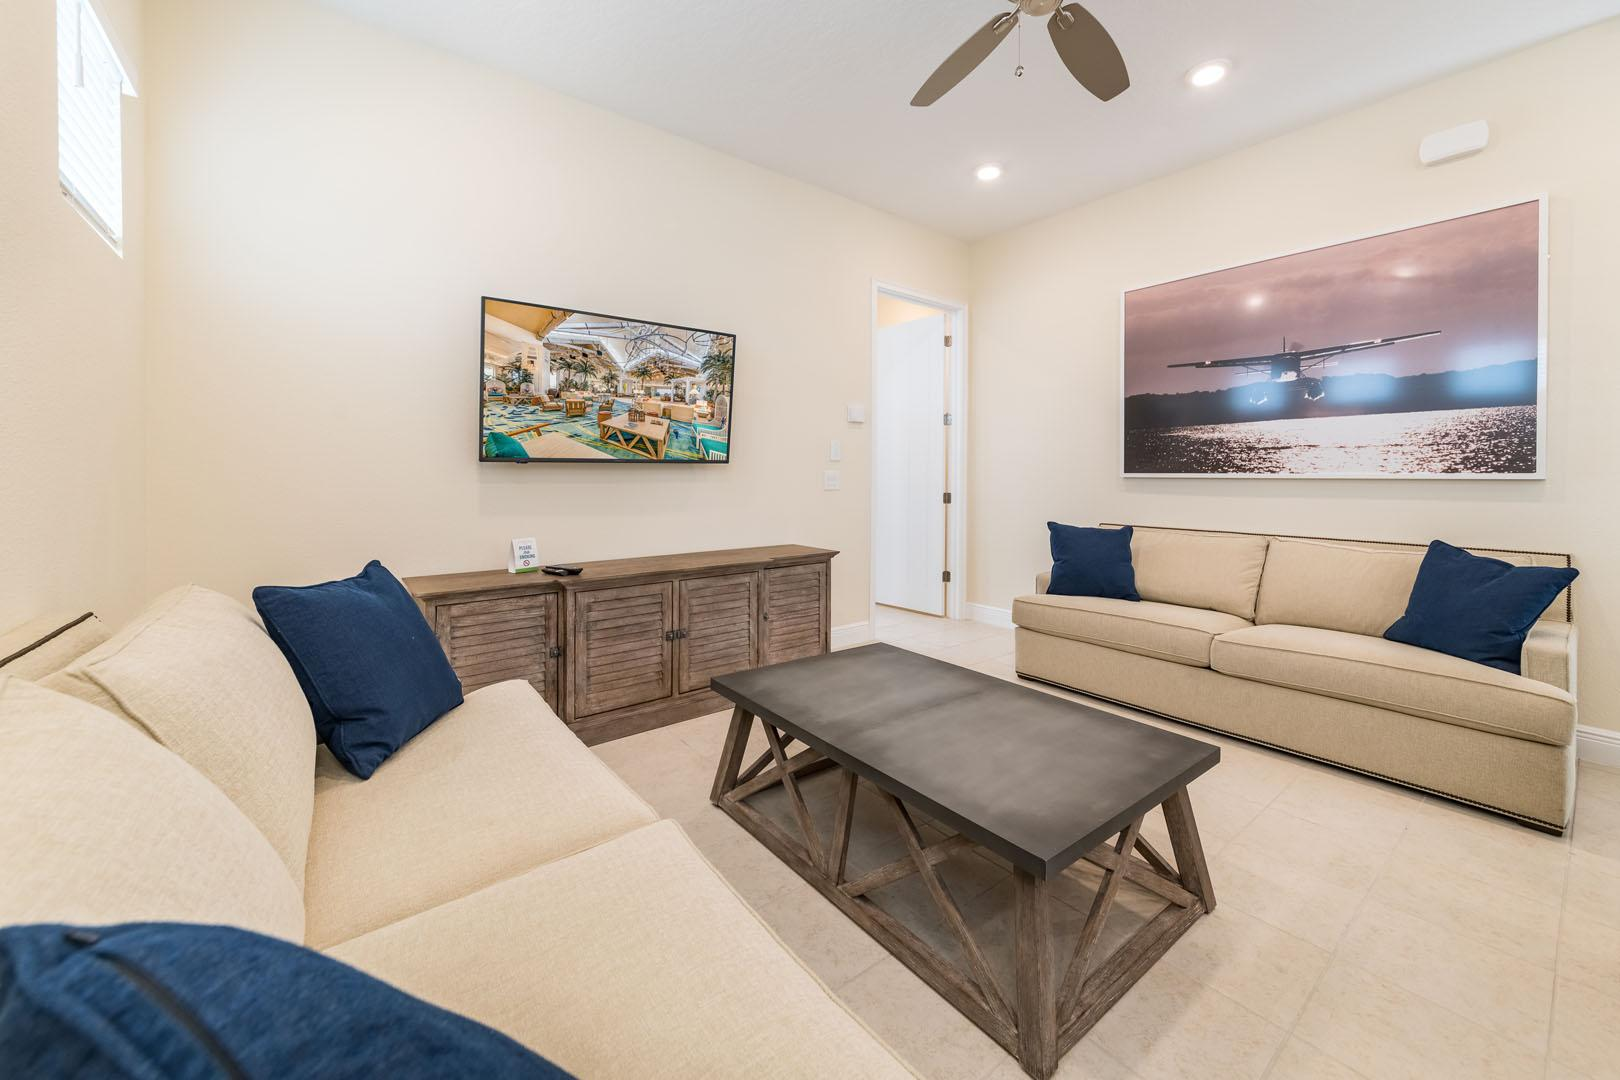 Property Image 2 - Inviting Cottage near Disney World with Hotel Amenities